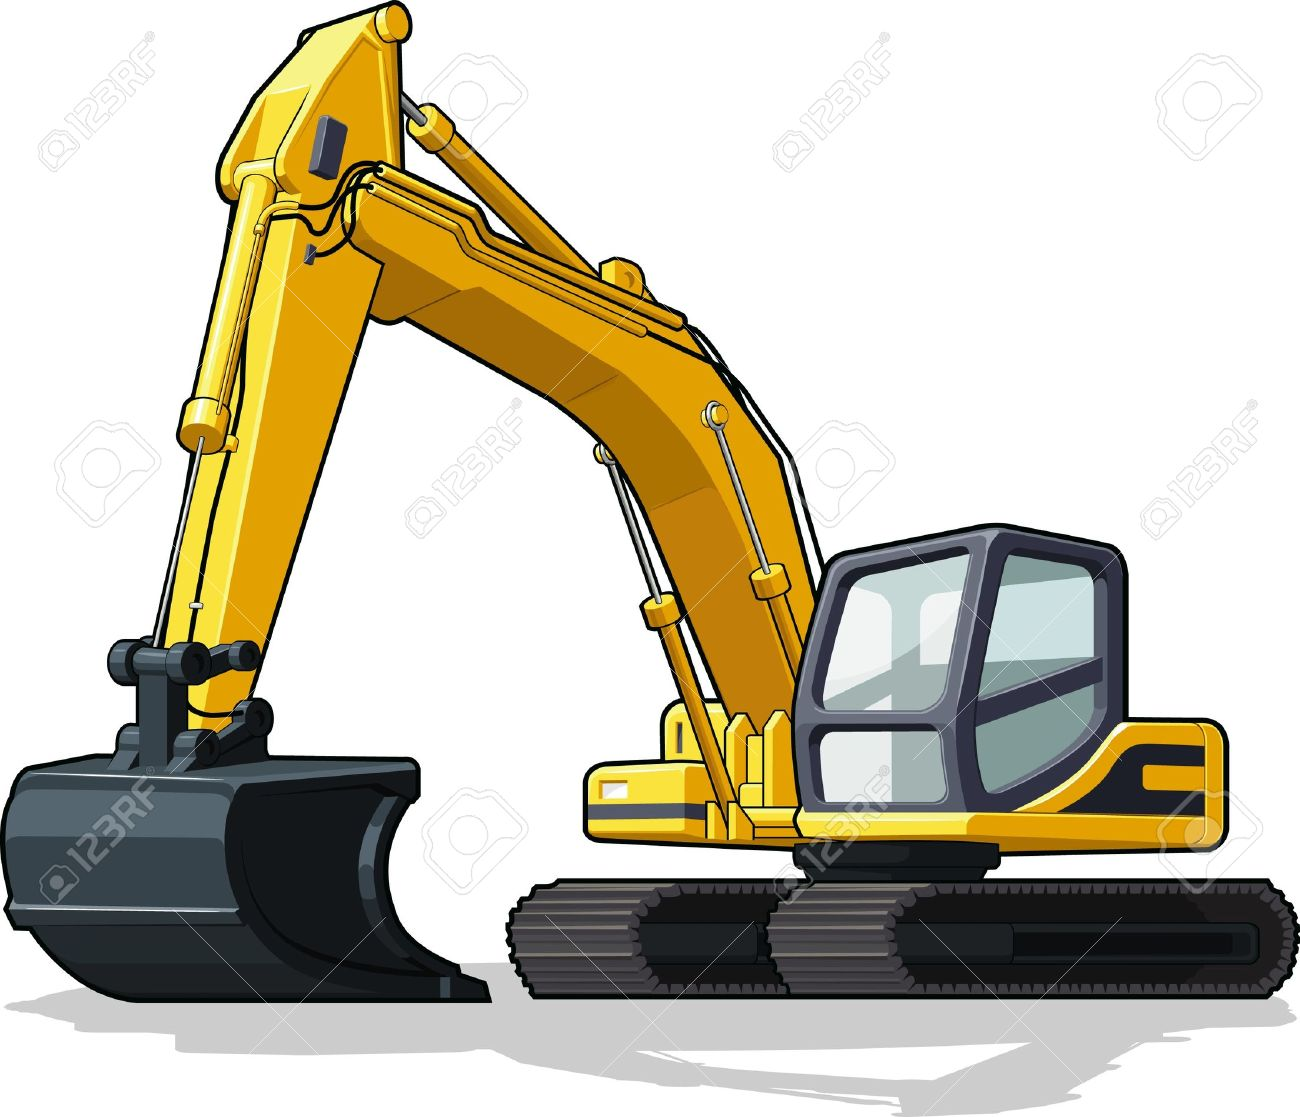 2 686 excavator bucket stock illustrations cliparts and royalty